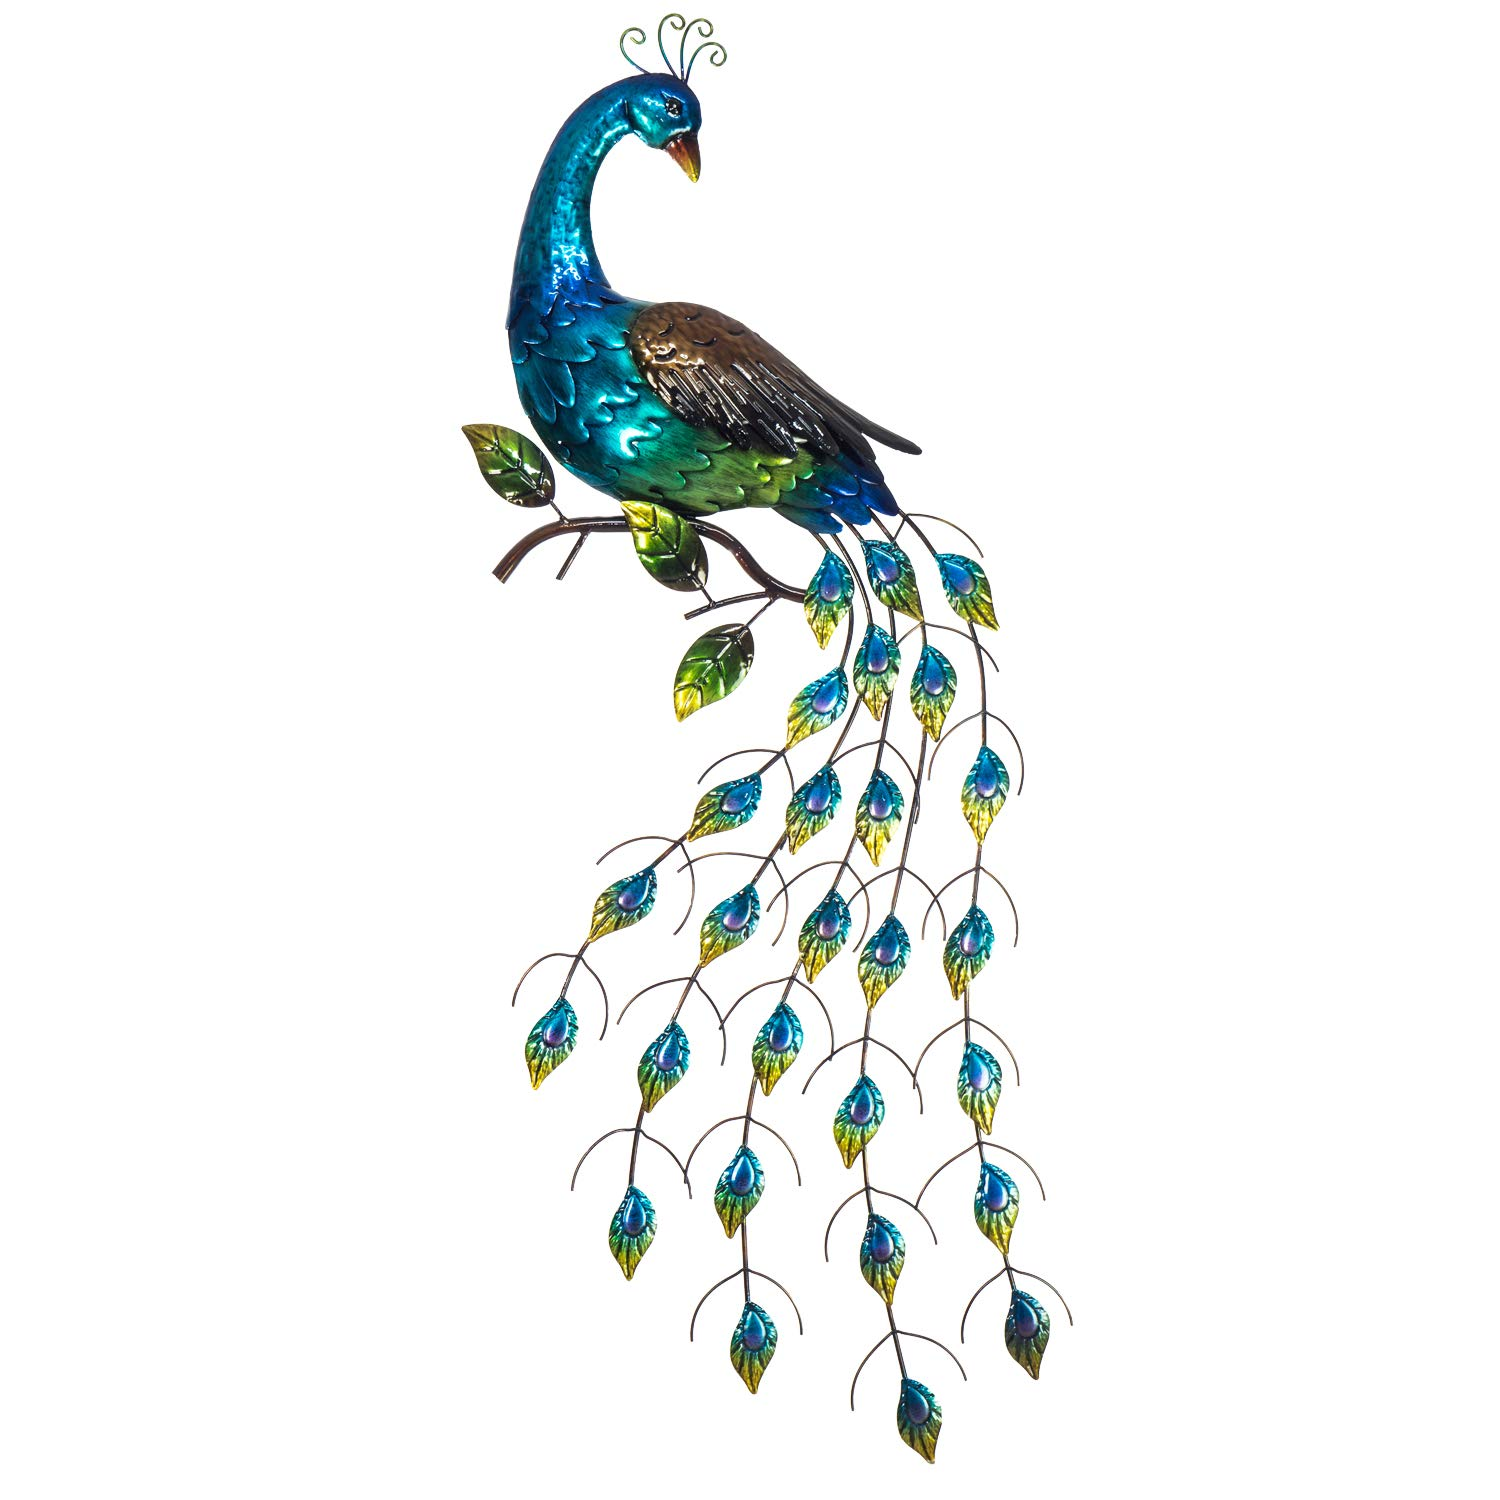 """Peacock Wall Decor - 6D Metal Design - Hand Painted Wall-Hanging - Large  Impressive Wall Décor - 68"""" x 6"""" - Indoor or Outdoor Covered Areas - Home"""